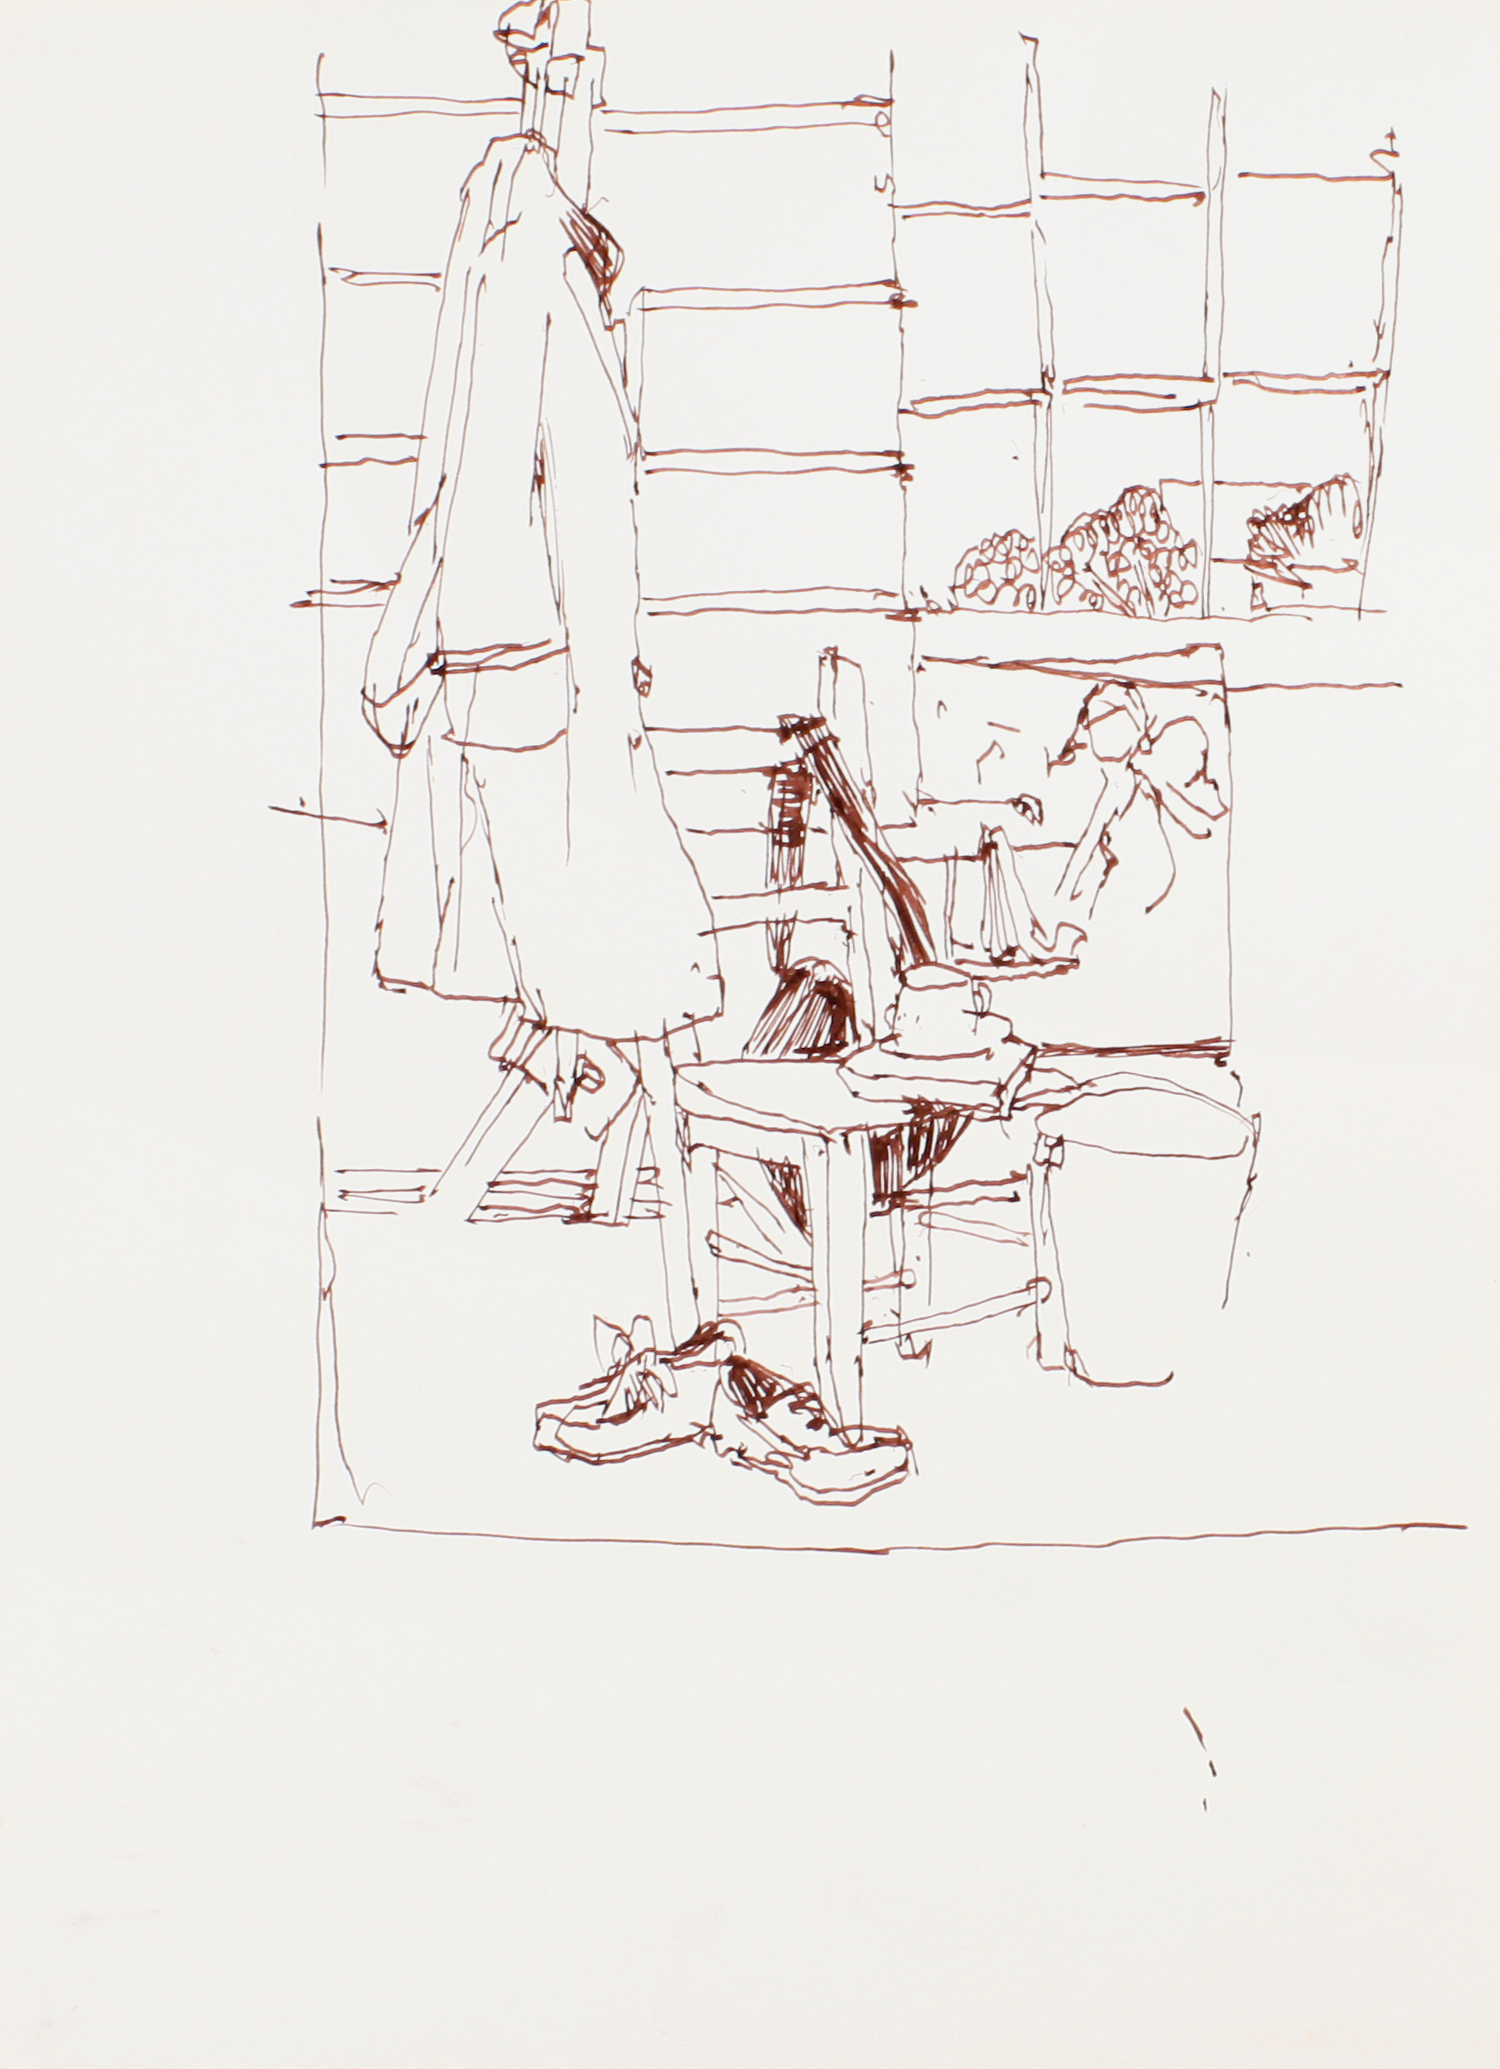 1990s_Studio_with_Coat_on_Easel_ink_on_paper_13x9in_WPF113.jpg